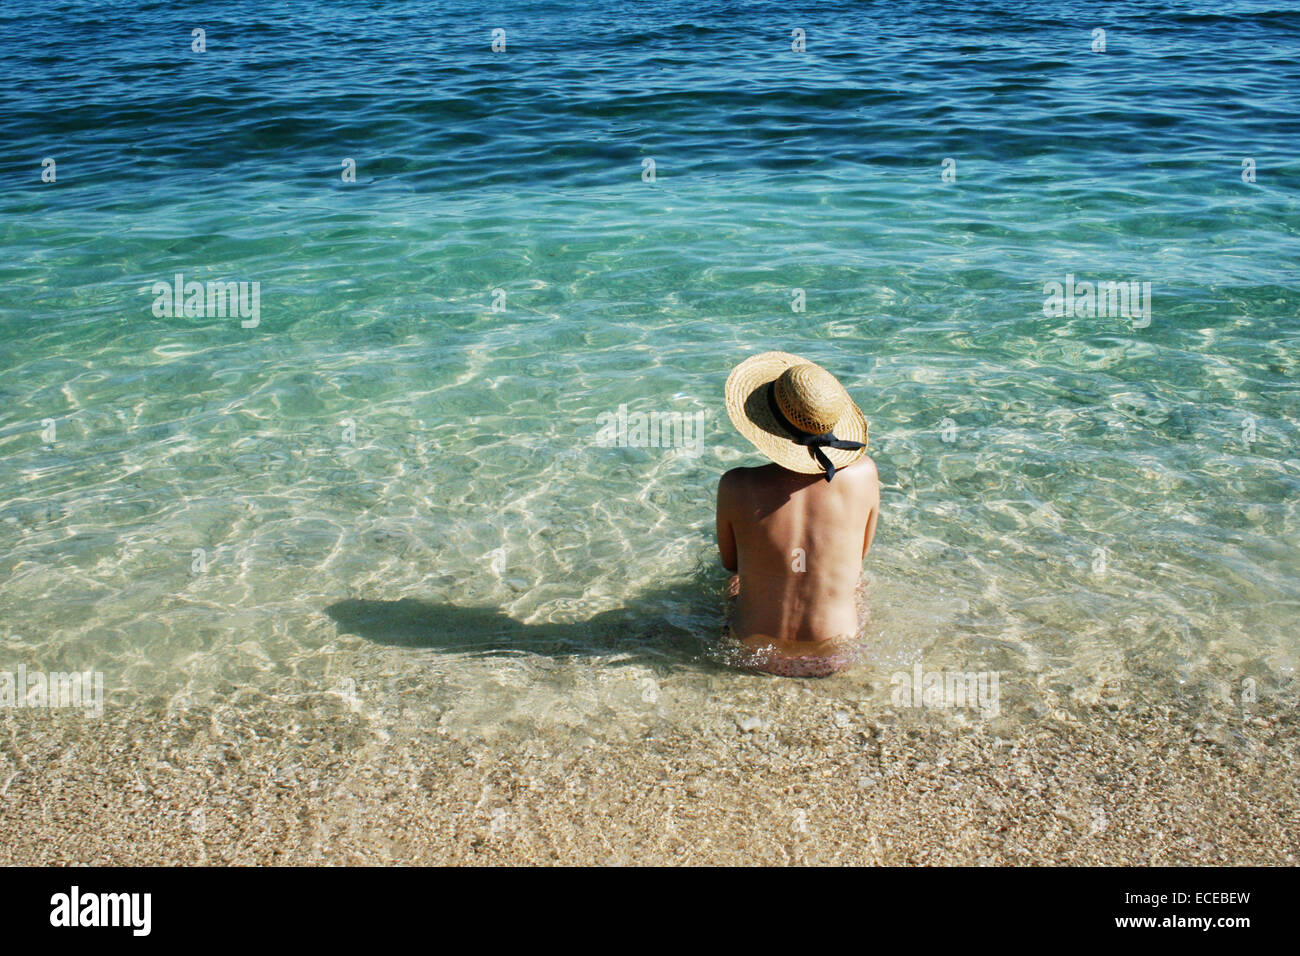 Croatia, Krk Island, Stara Baska boot topping, Woman sitting in water - Stock Image